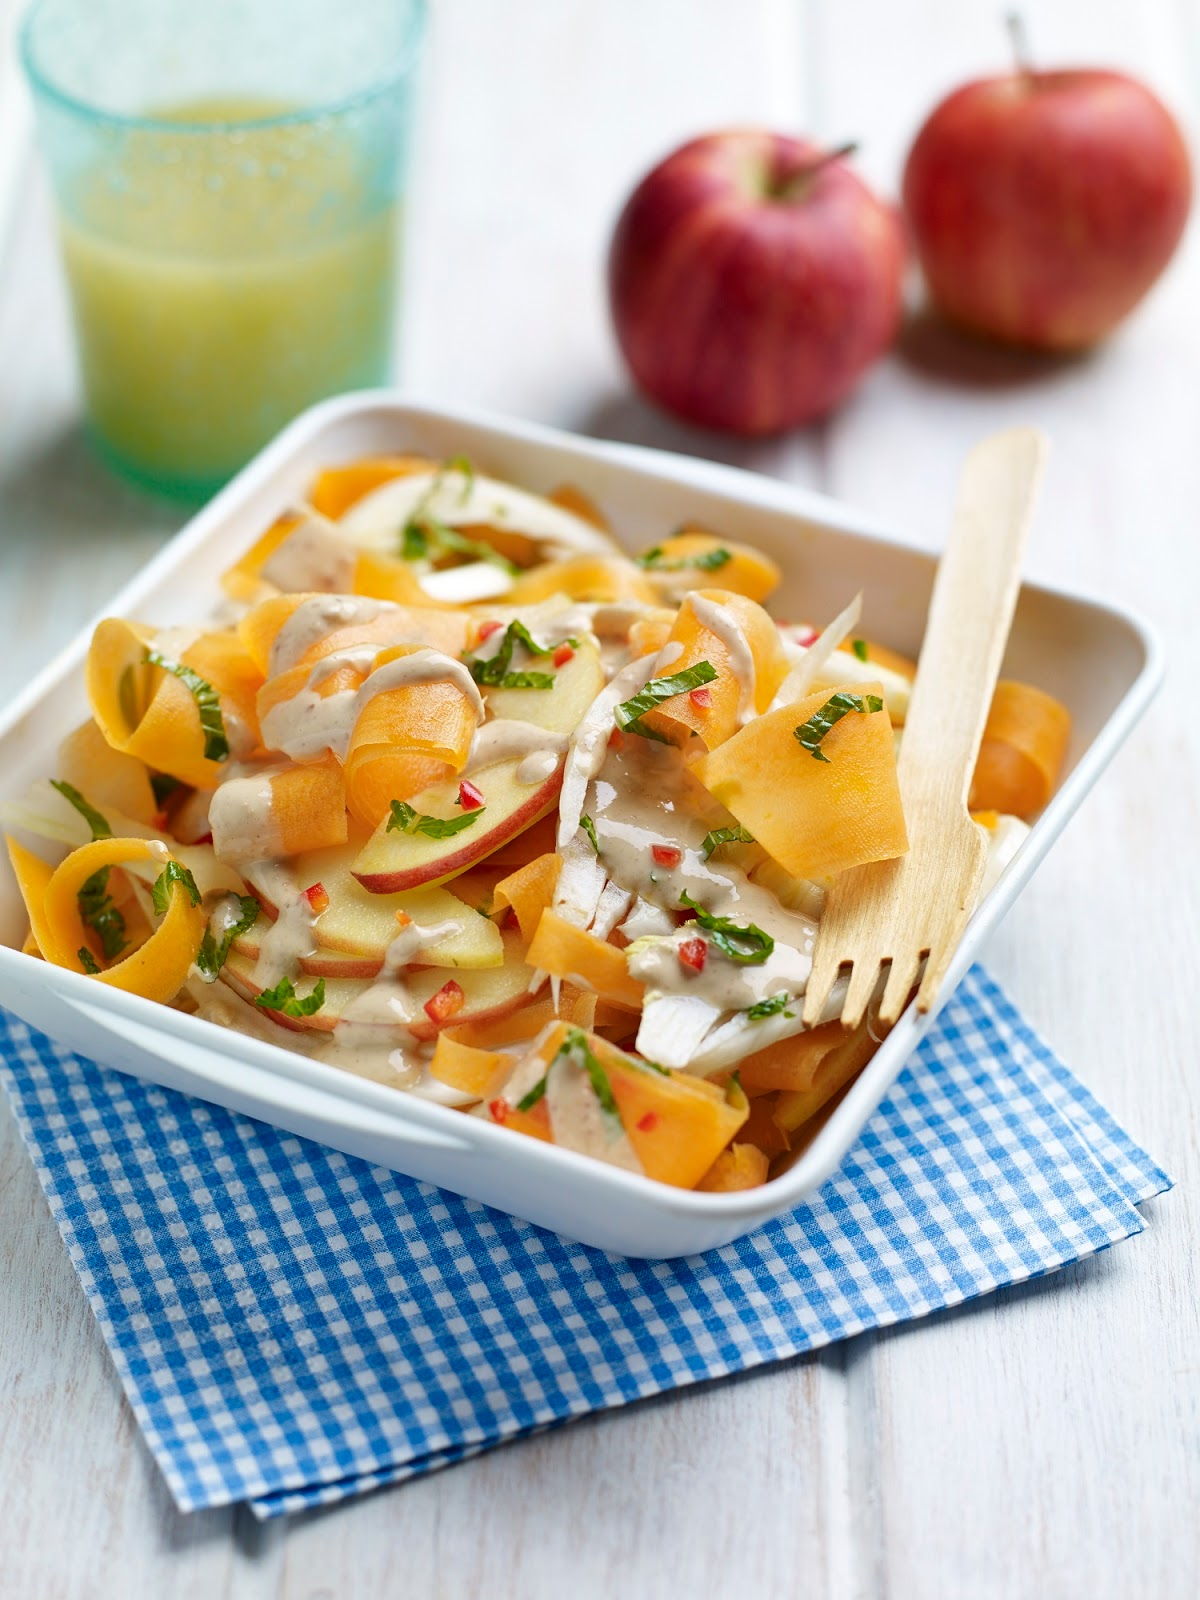 Crunchy Carrot And Apple Salad With Cashew Dressing